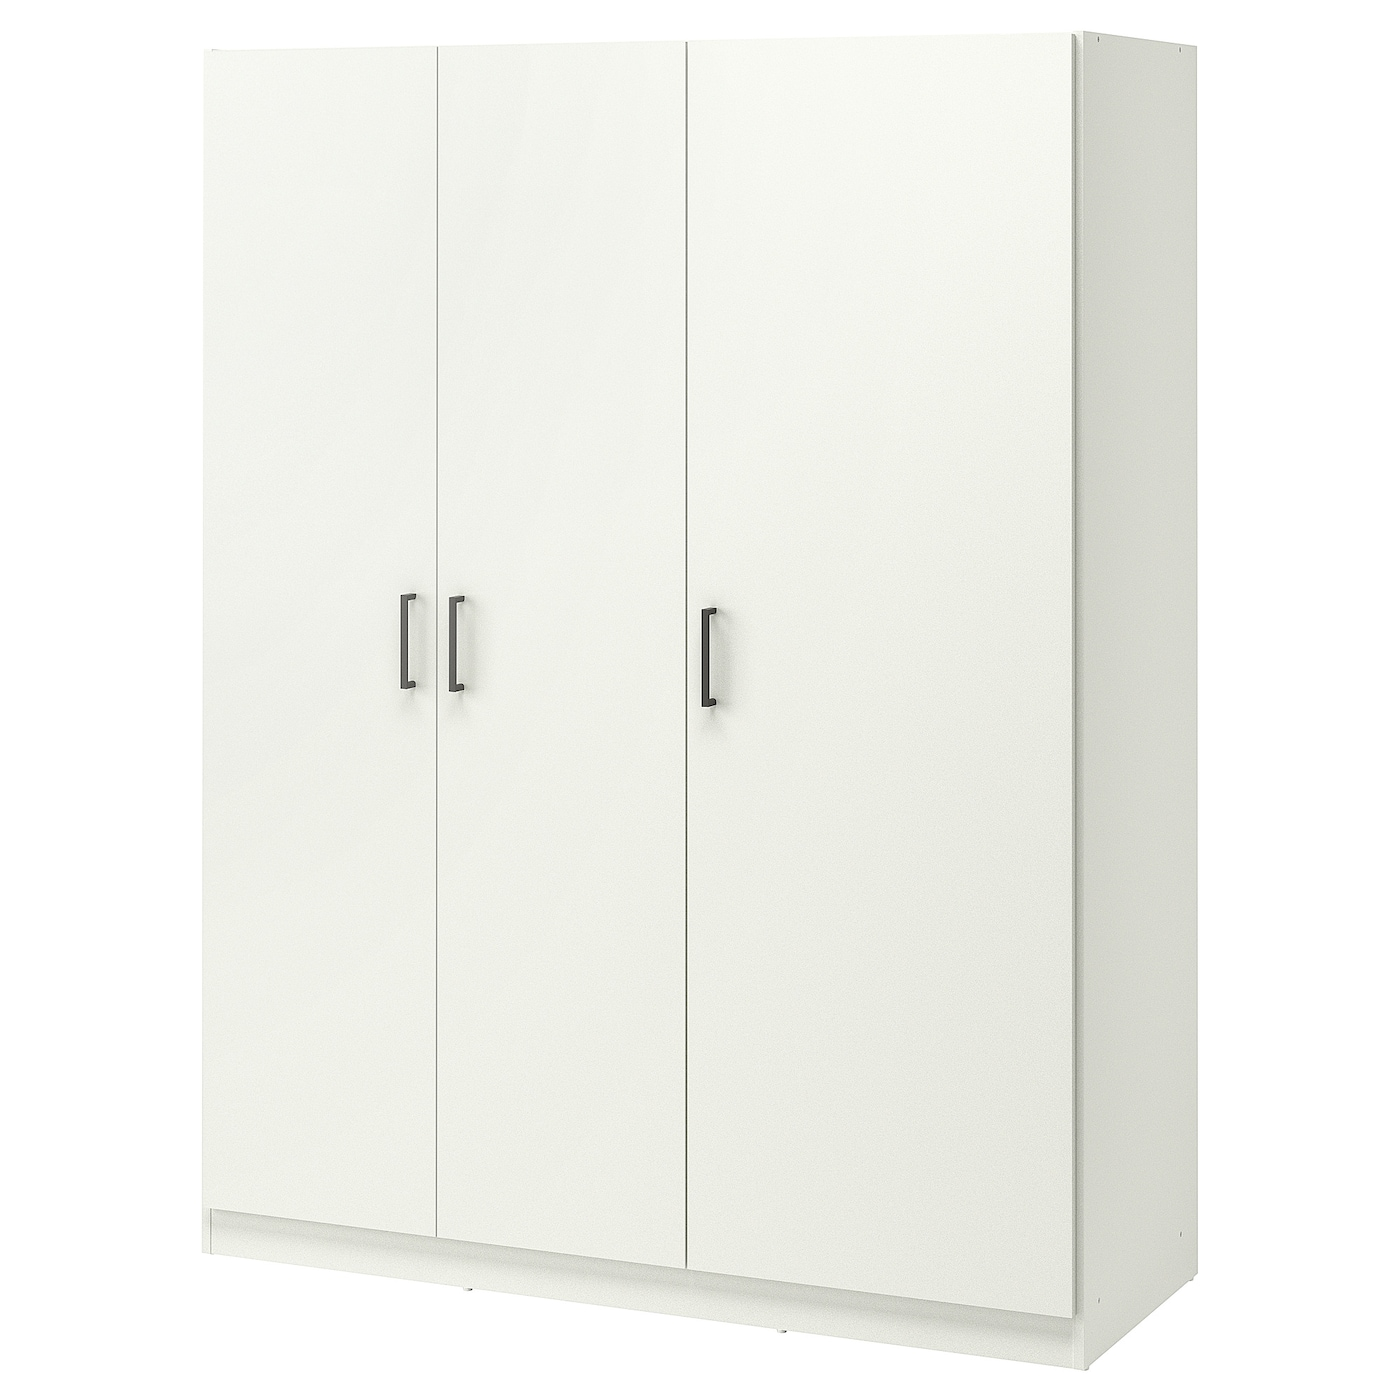 domb s wardrobe white 140 x 181 cm ikea. Black Bedroom Furniture Sets. Home Design Ideas